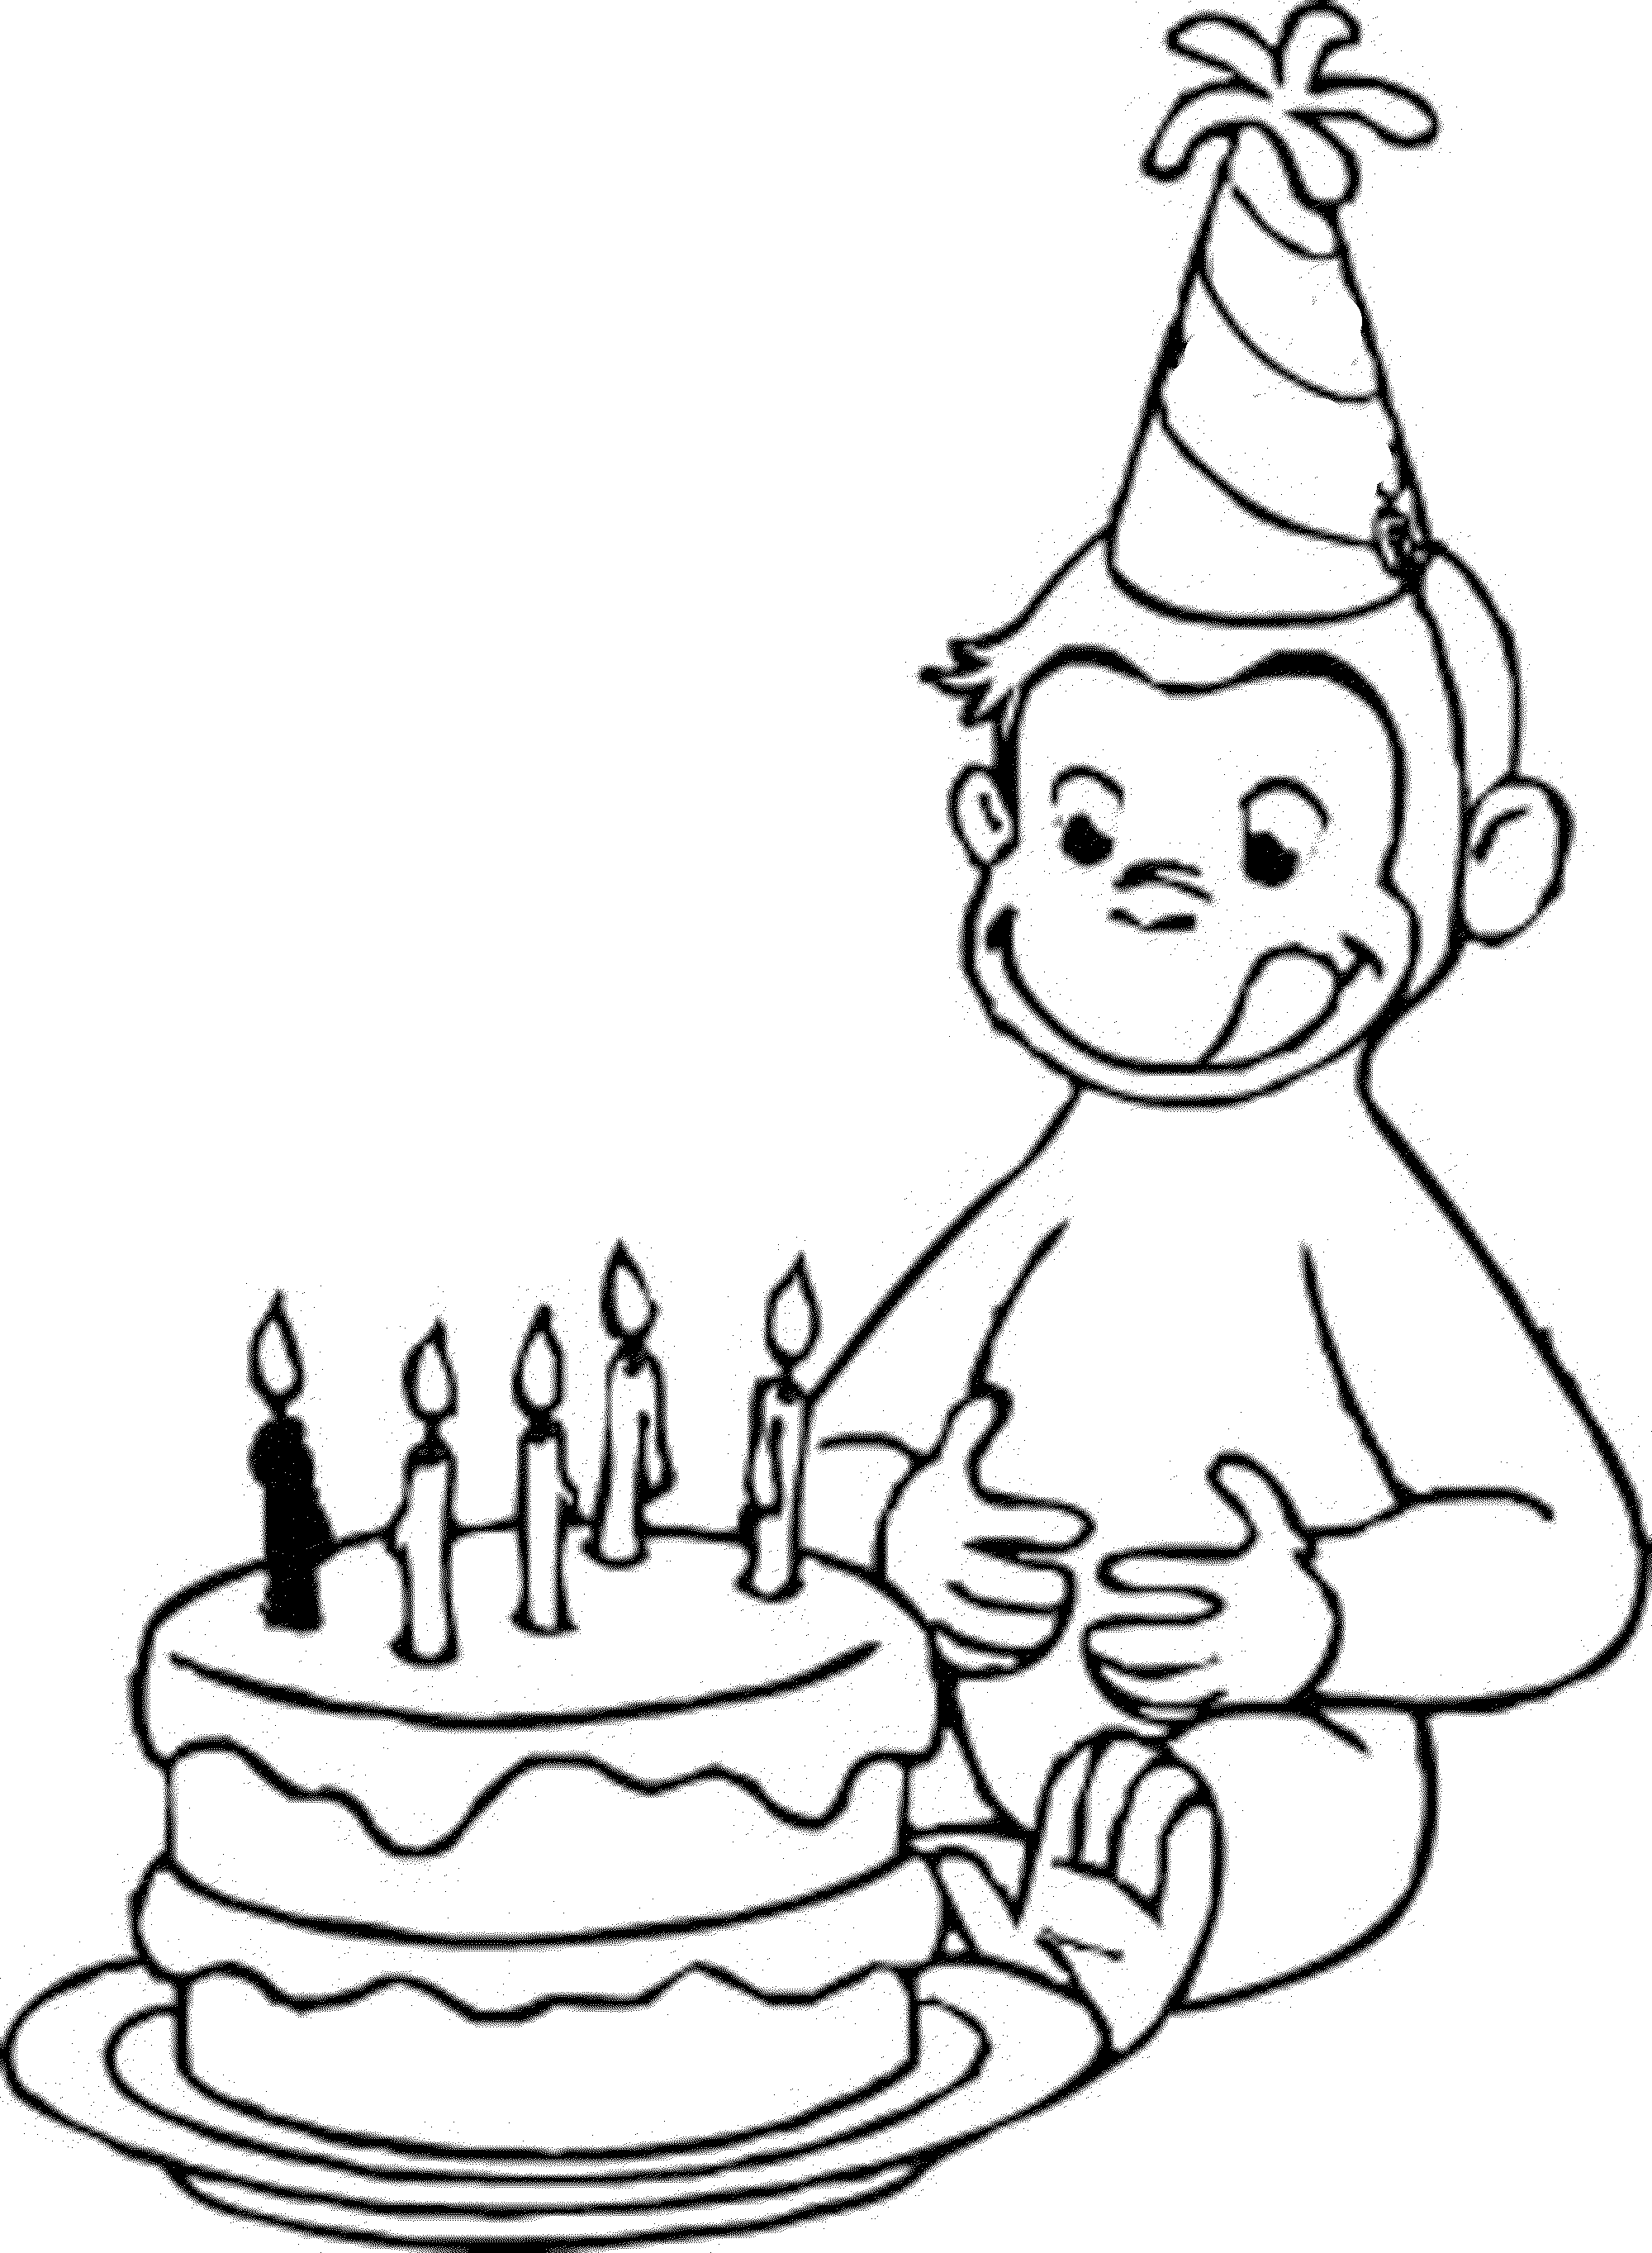 free printable coloring pages of curious george | Curious george coloring pages to download and print for free